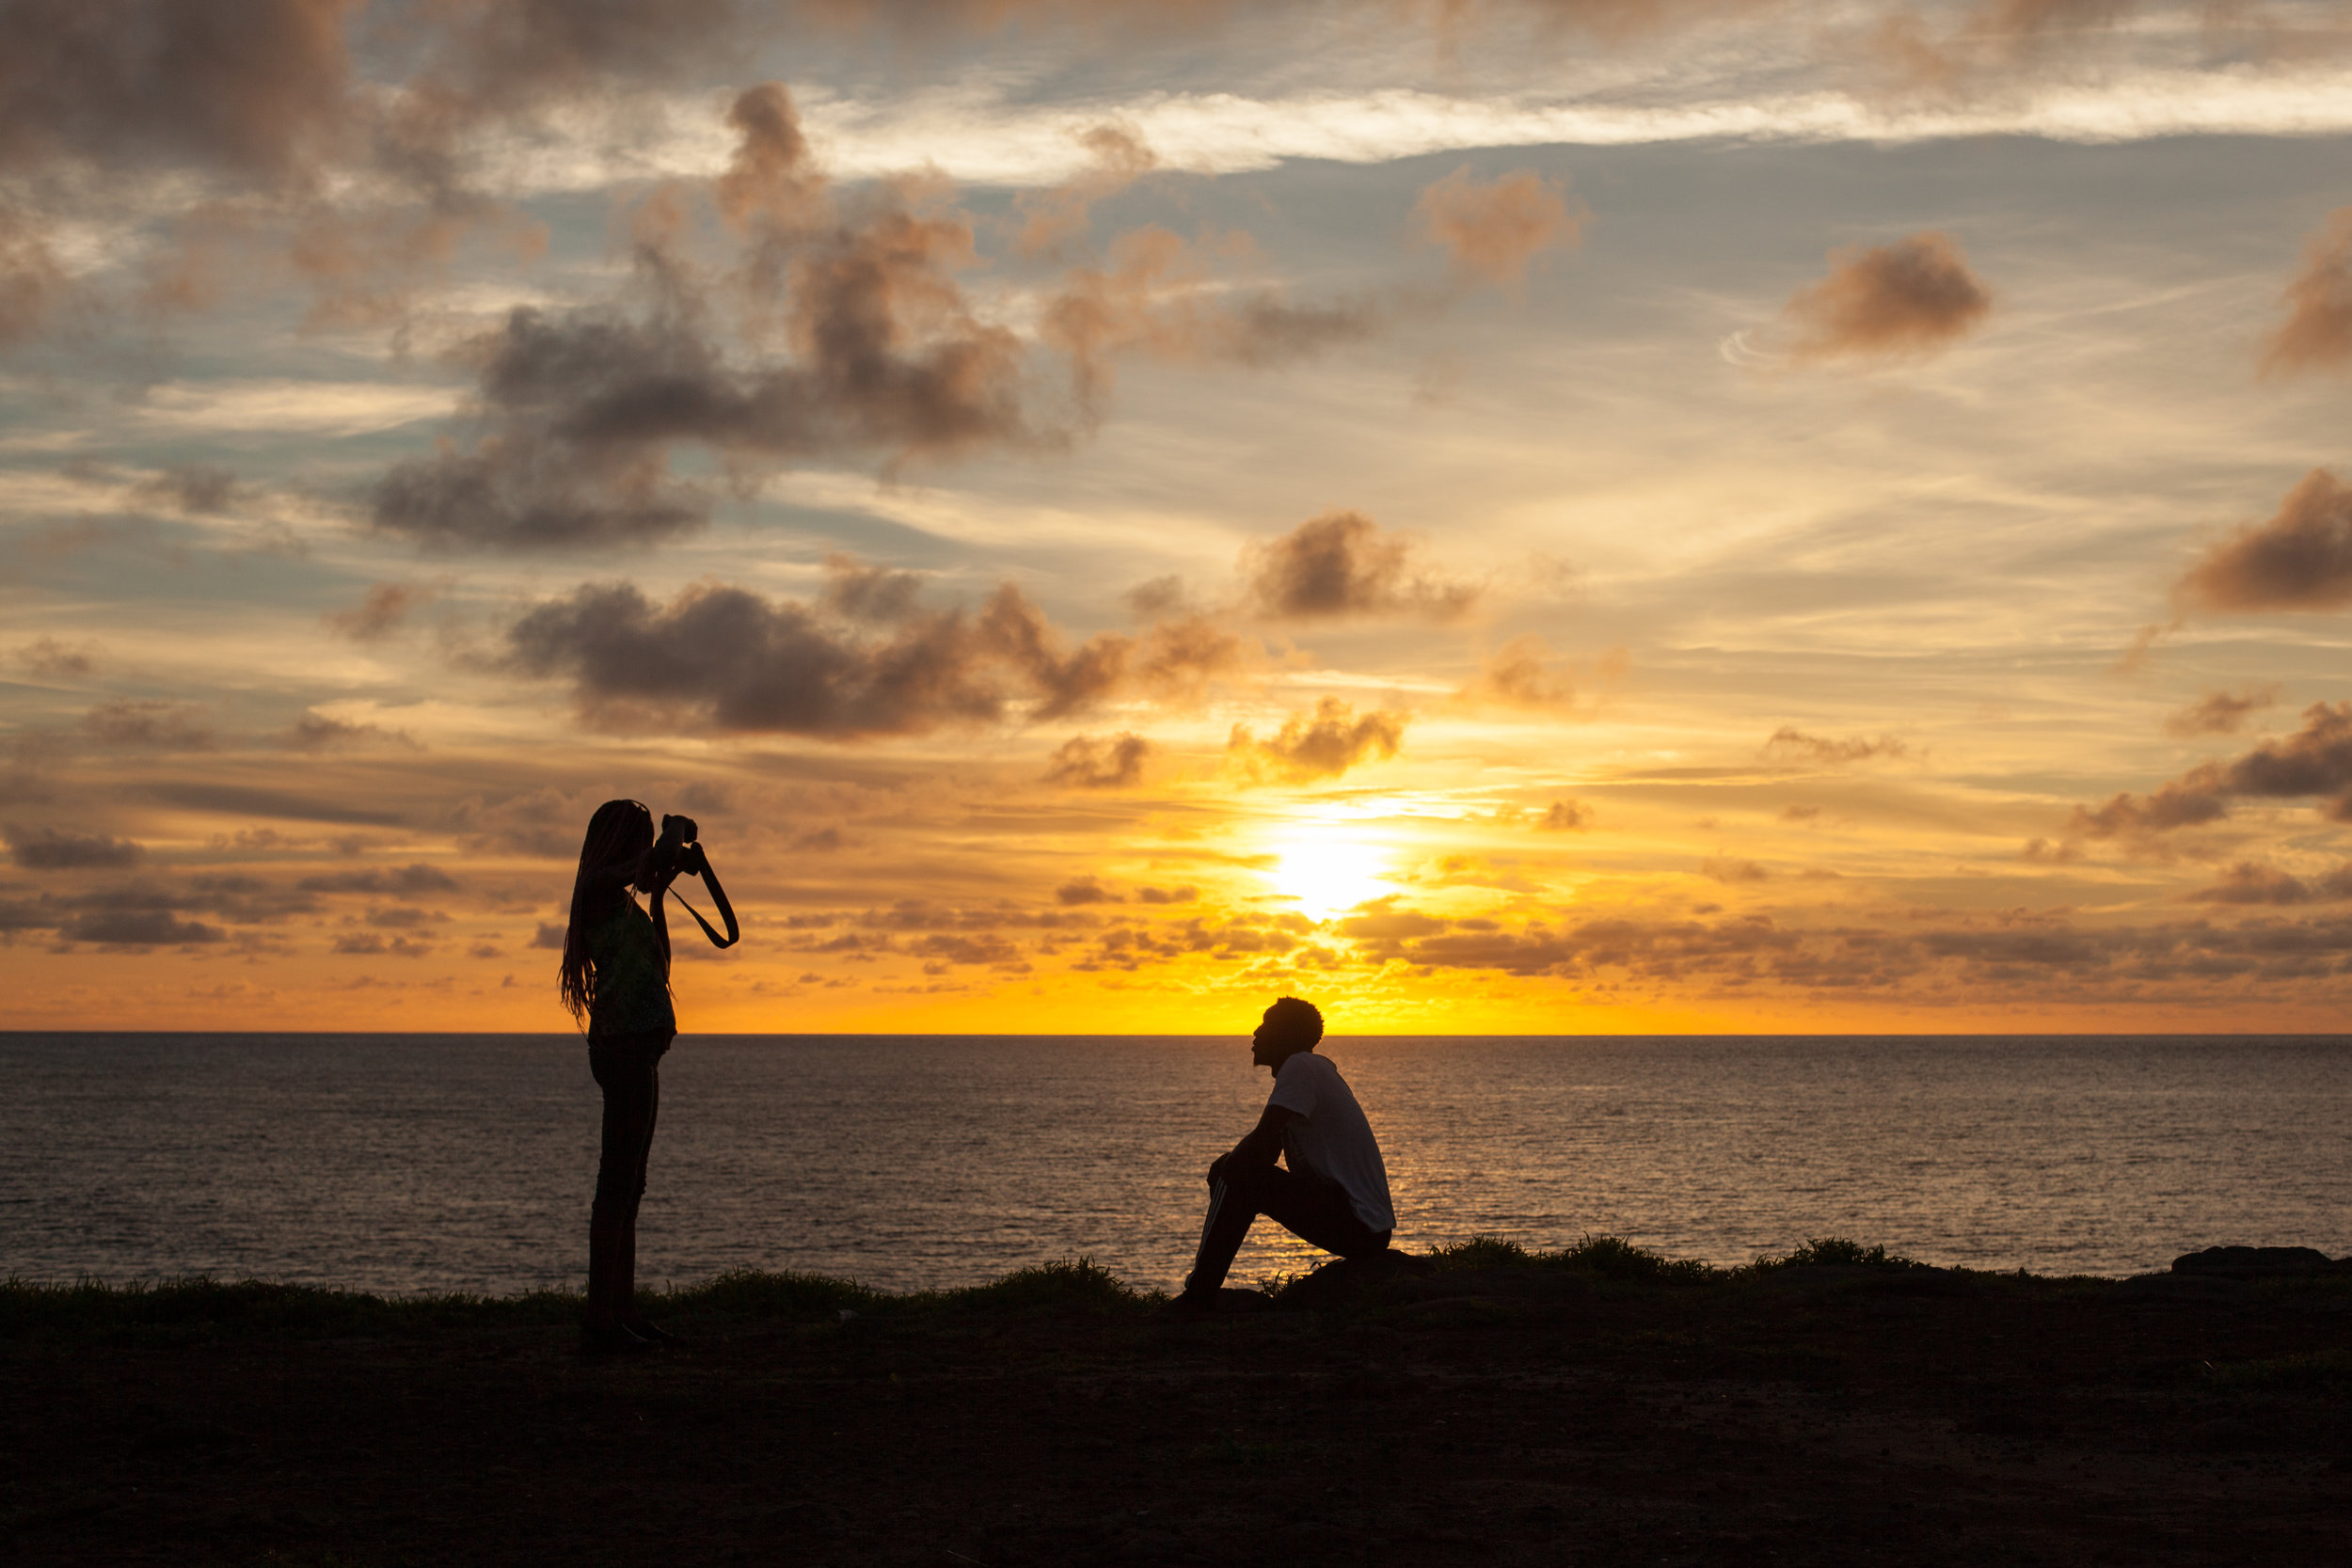 A photo shoot takes place at sunset on Ngor island in Senegal.